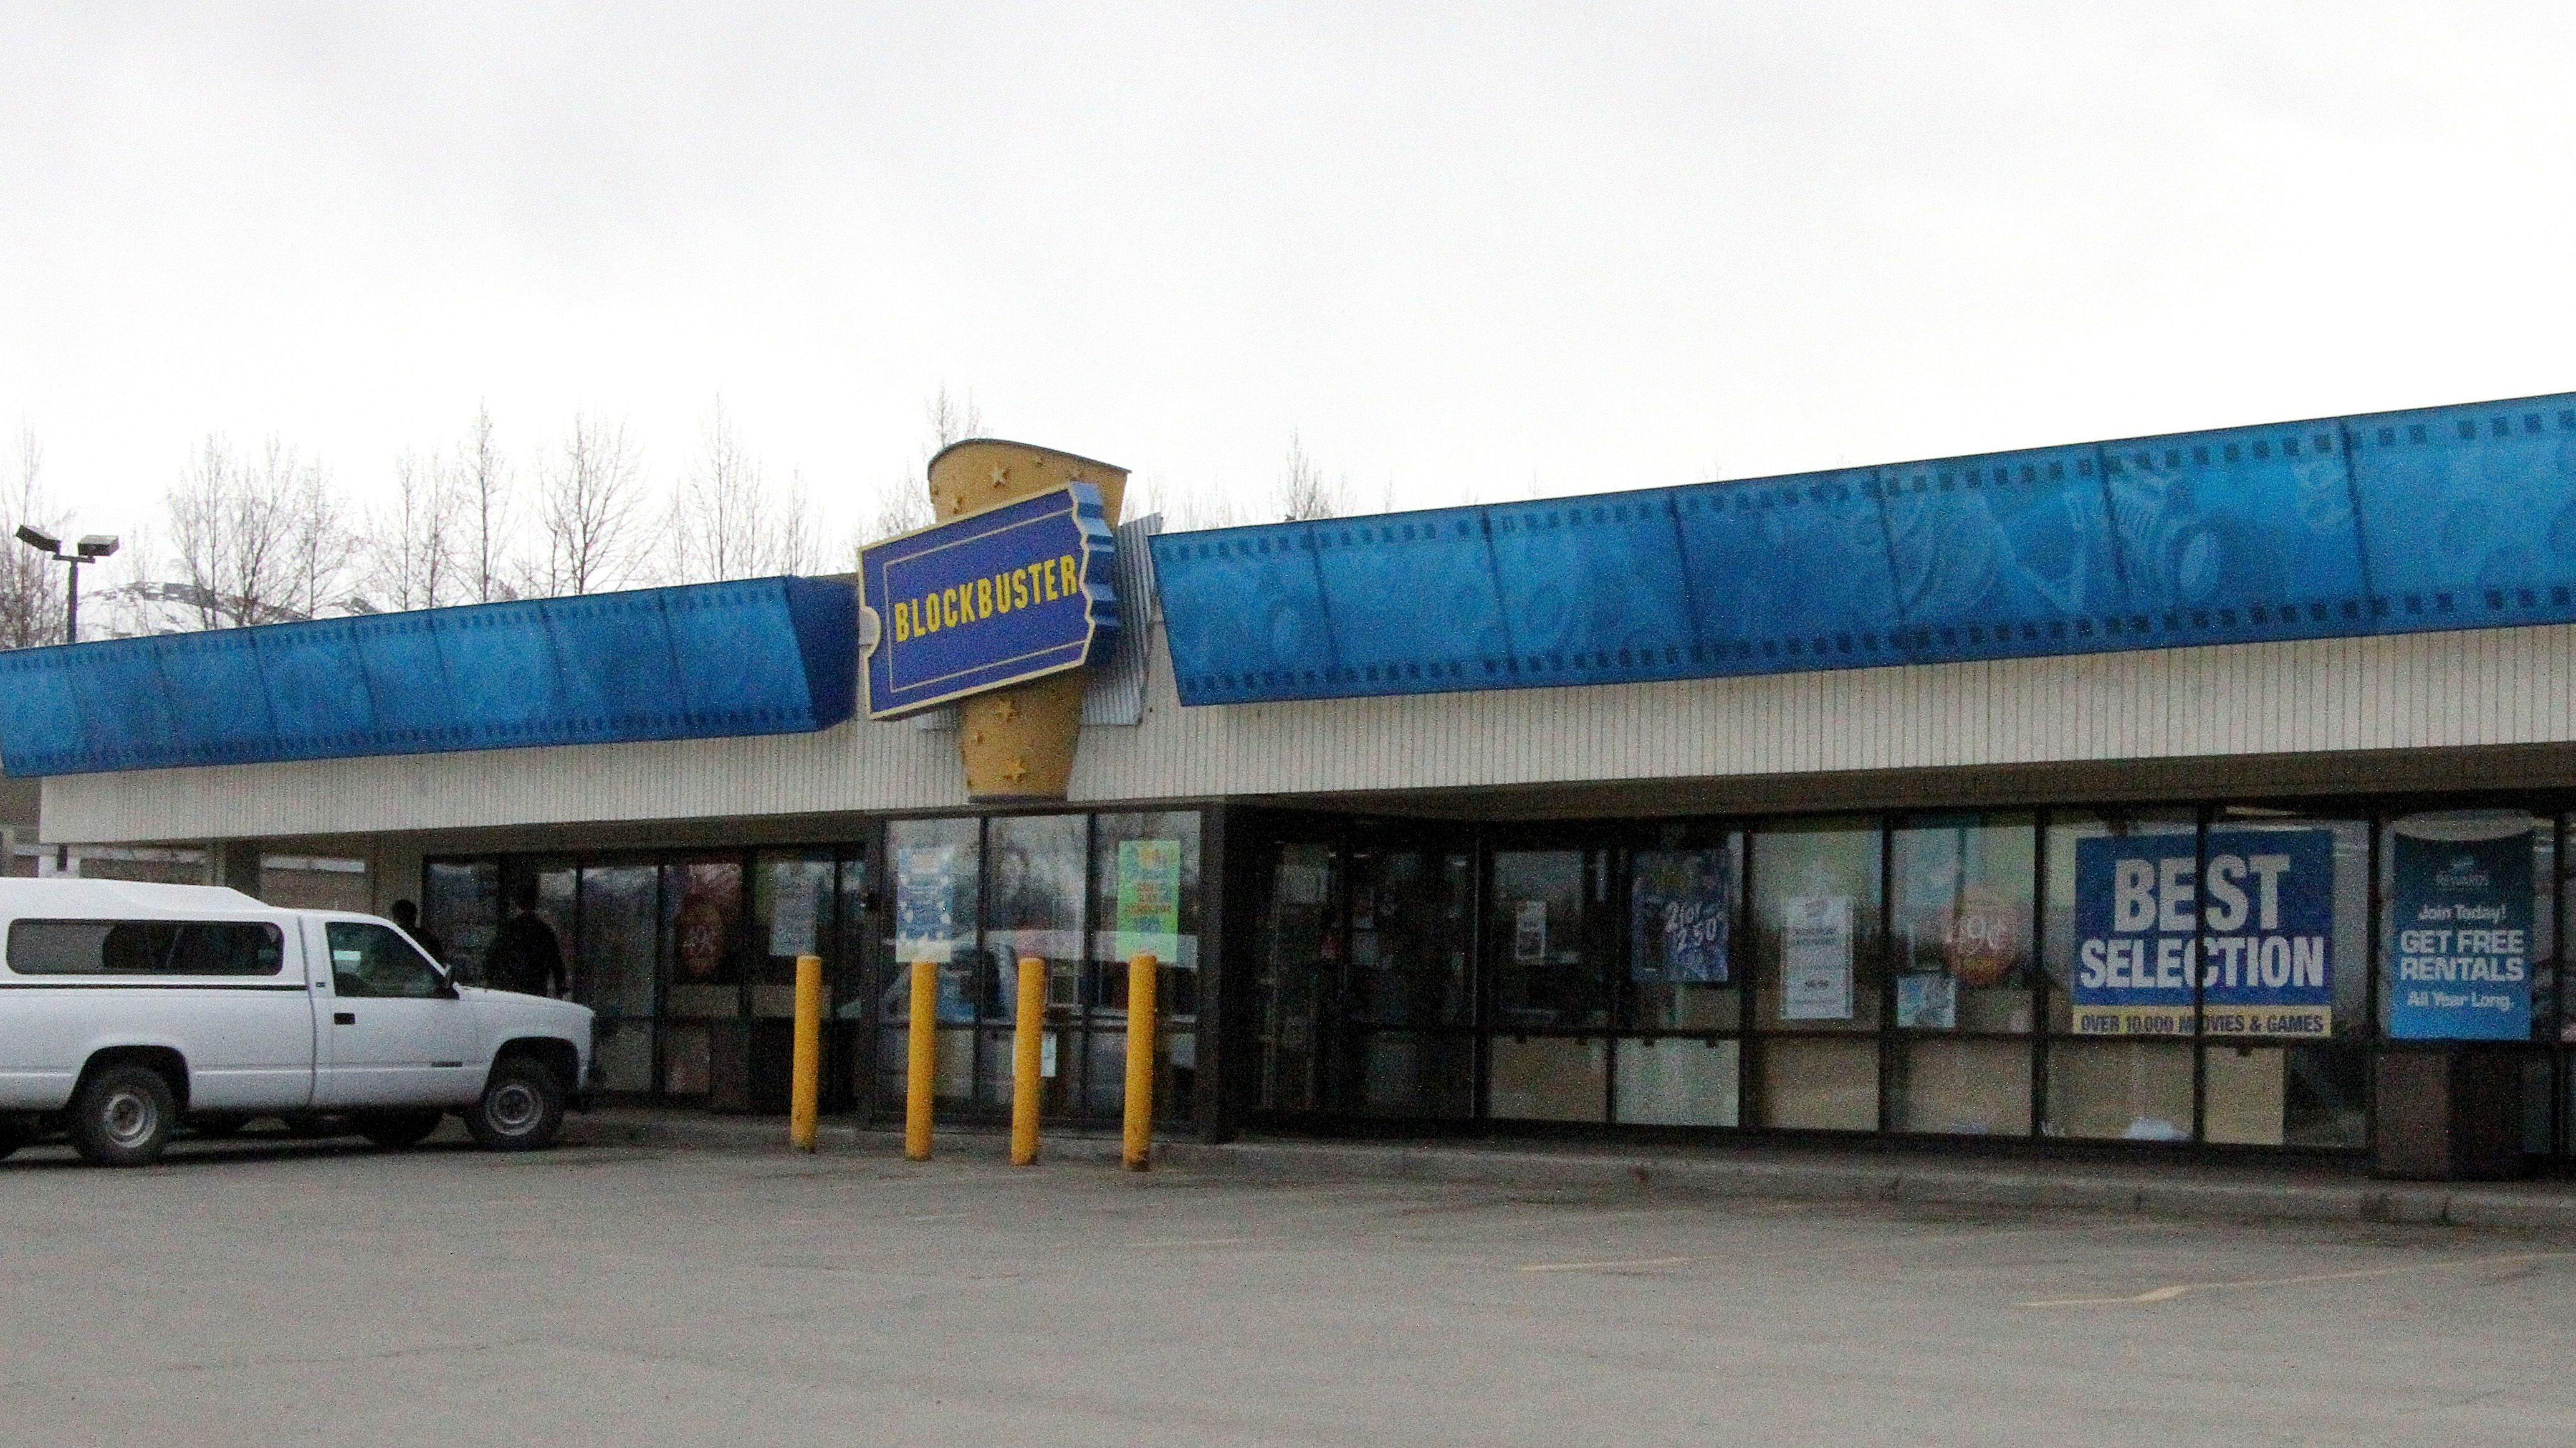 """FILE - This May 2, 2018 file photo shows the exterior of a Blockbuster Video store in Anchorage, Alaska. Despite the gift of the jockstrap worn by actor Russell Crowe in the 2005 movie """"Cinderella Man"""" from HBO's John Oliver to bring traffic into the store, Blockbuster Alaska General Manager Kevin Daymude said the last two Blockbuster Video locations in Alaska will rent their last video on Sunday, July 15, 2018, apparently leaving the last Blockbuster Video in Bend, Ore. (AP Photo/Mark Thiessen, File)"""